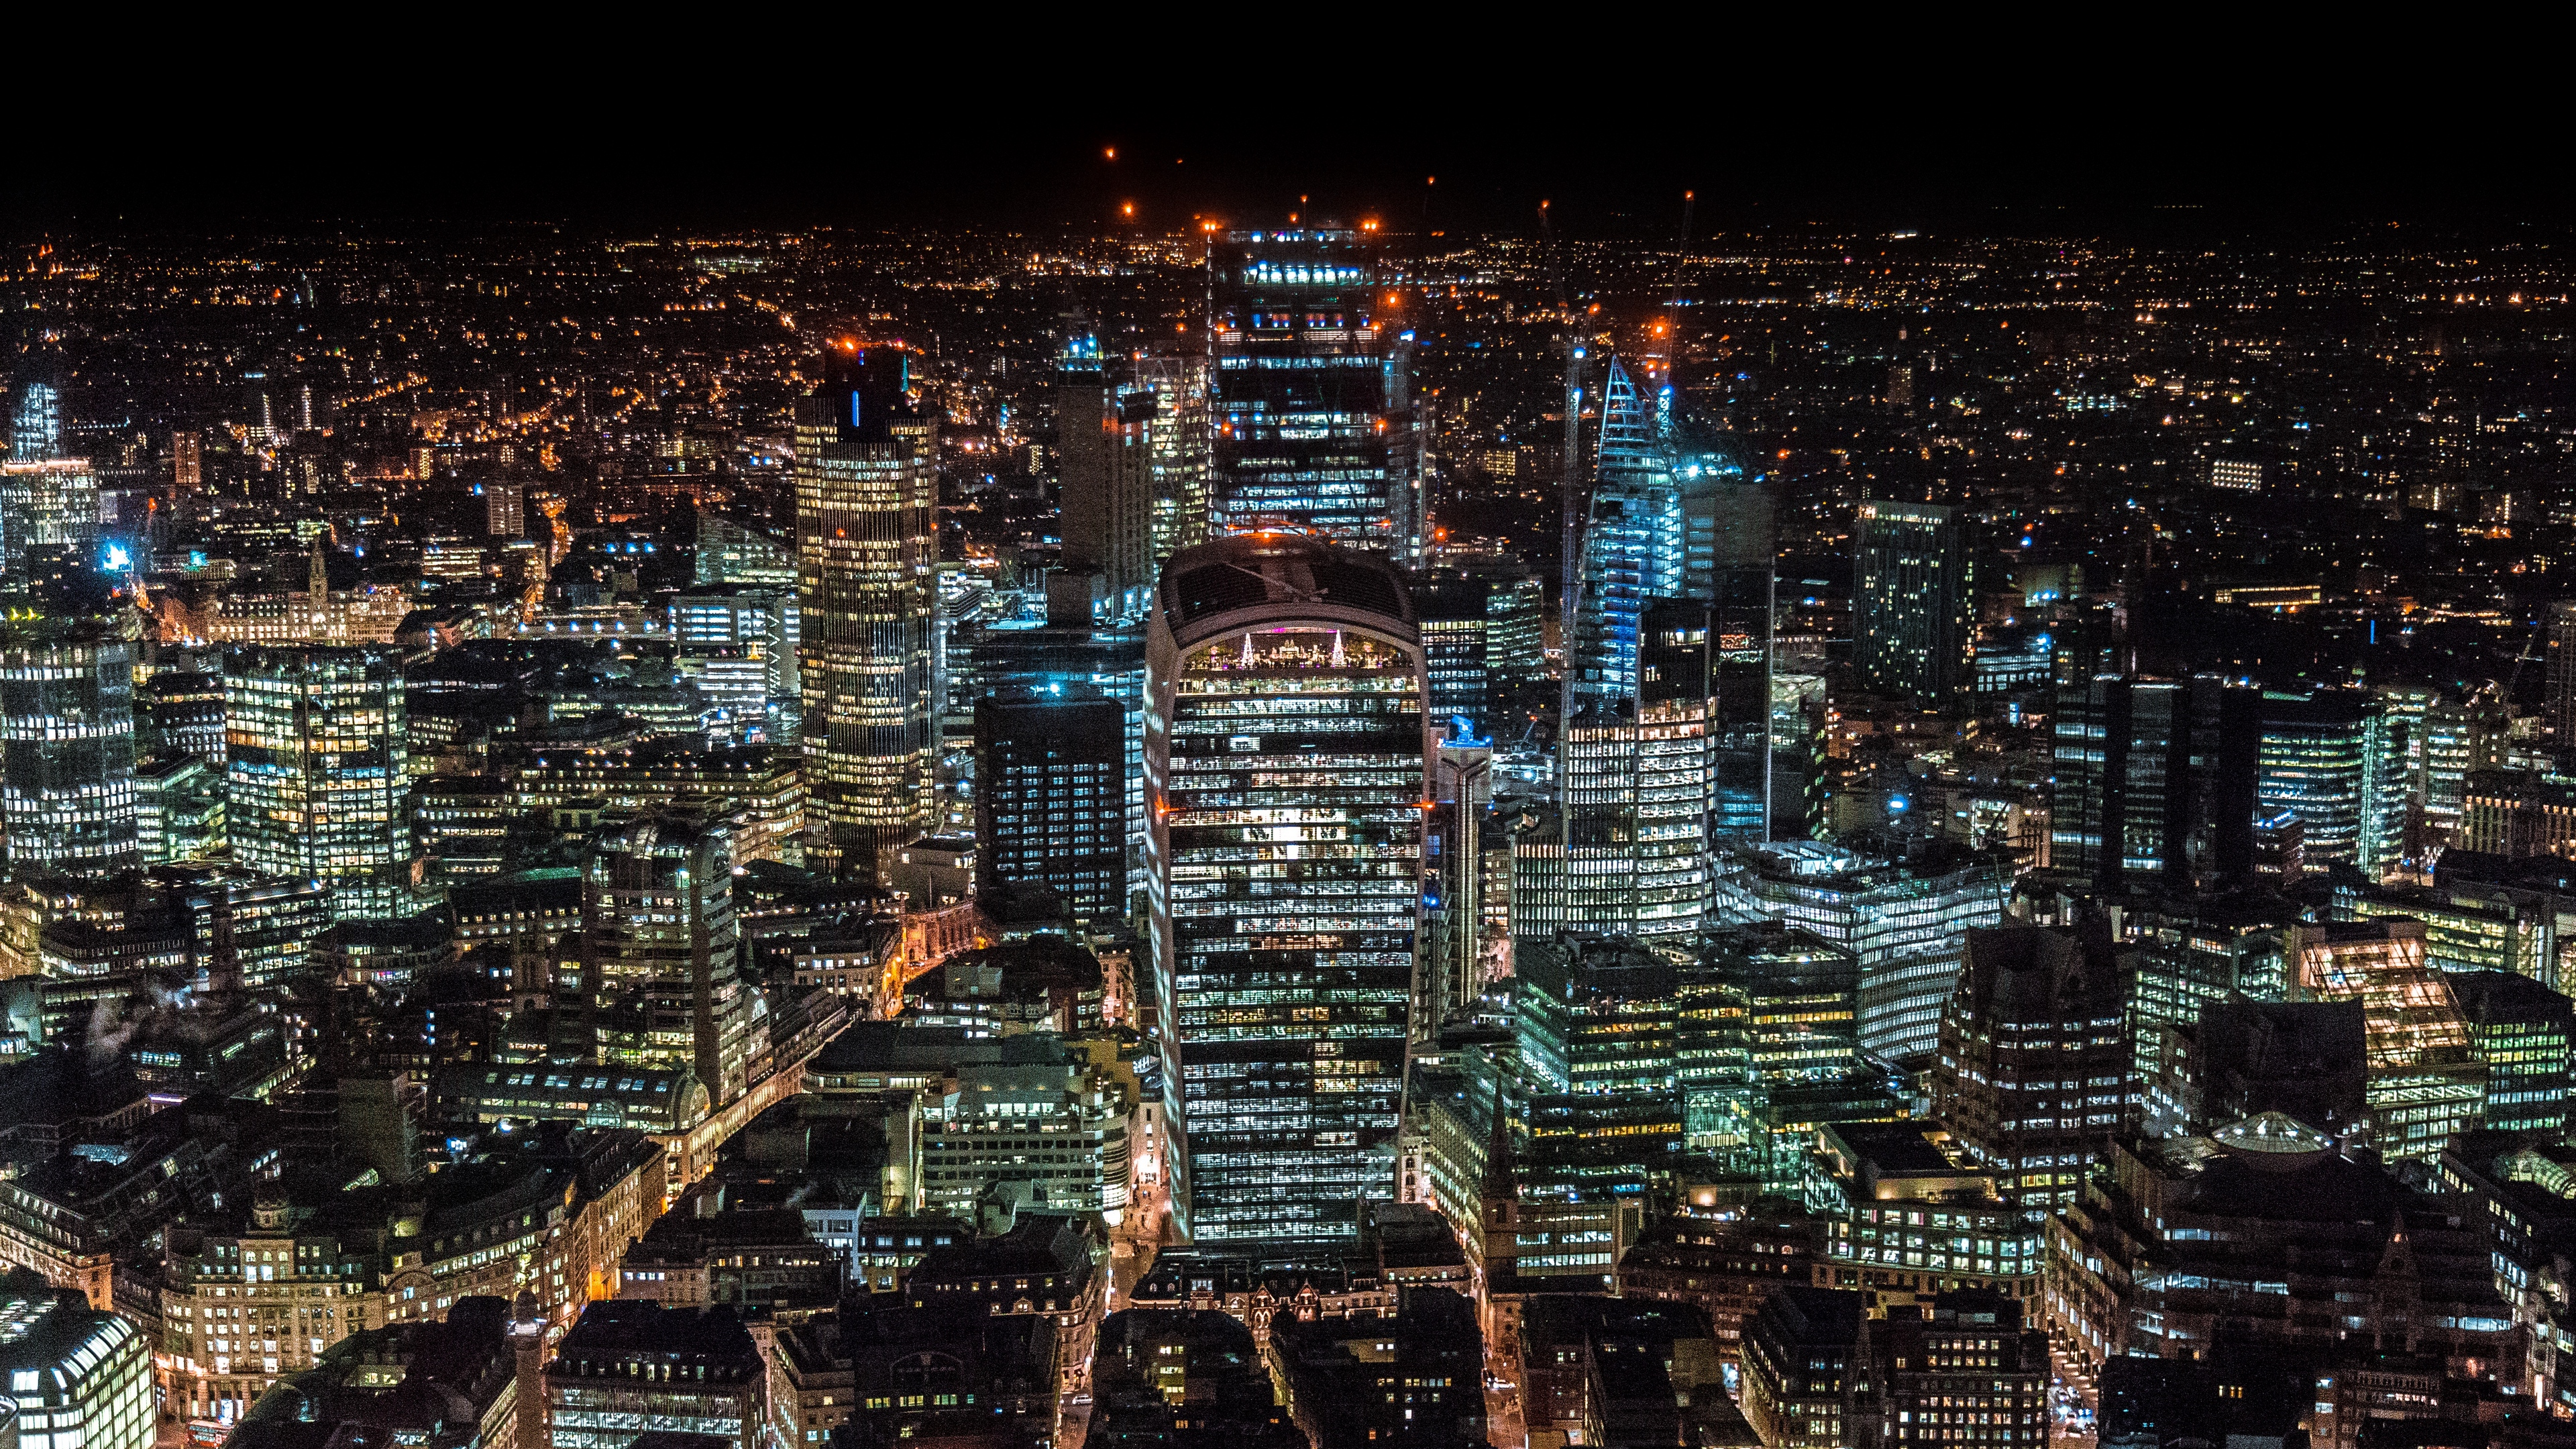 london united kingdom skyscrapers top view night city 4k 1538068467 - london, united kingdom, skyscrapers, top view, night city 4k - united kingdom, Skyscrapers, London